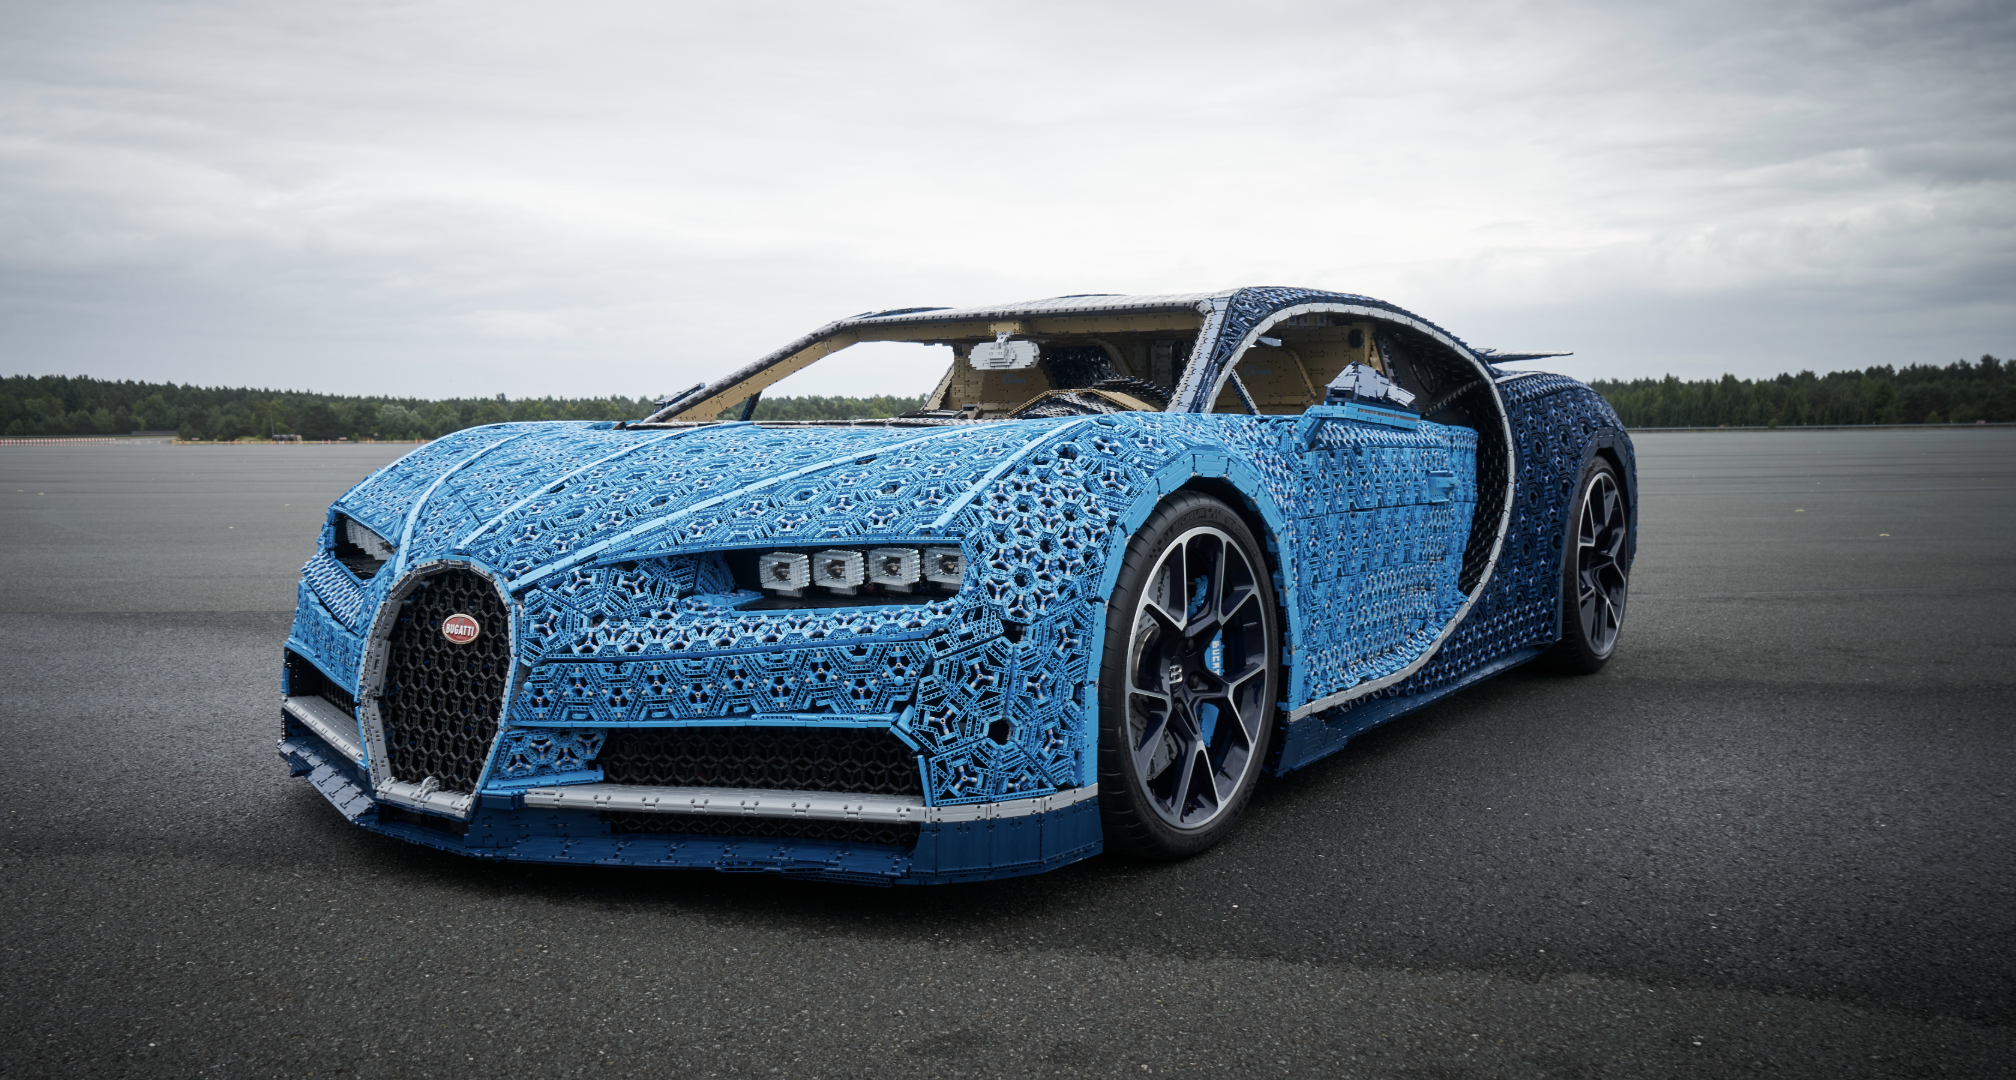 Camera Lego Driver : Lego built a life size drivable bugatti from over a million